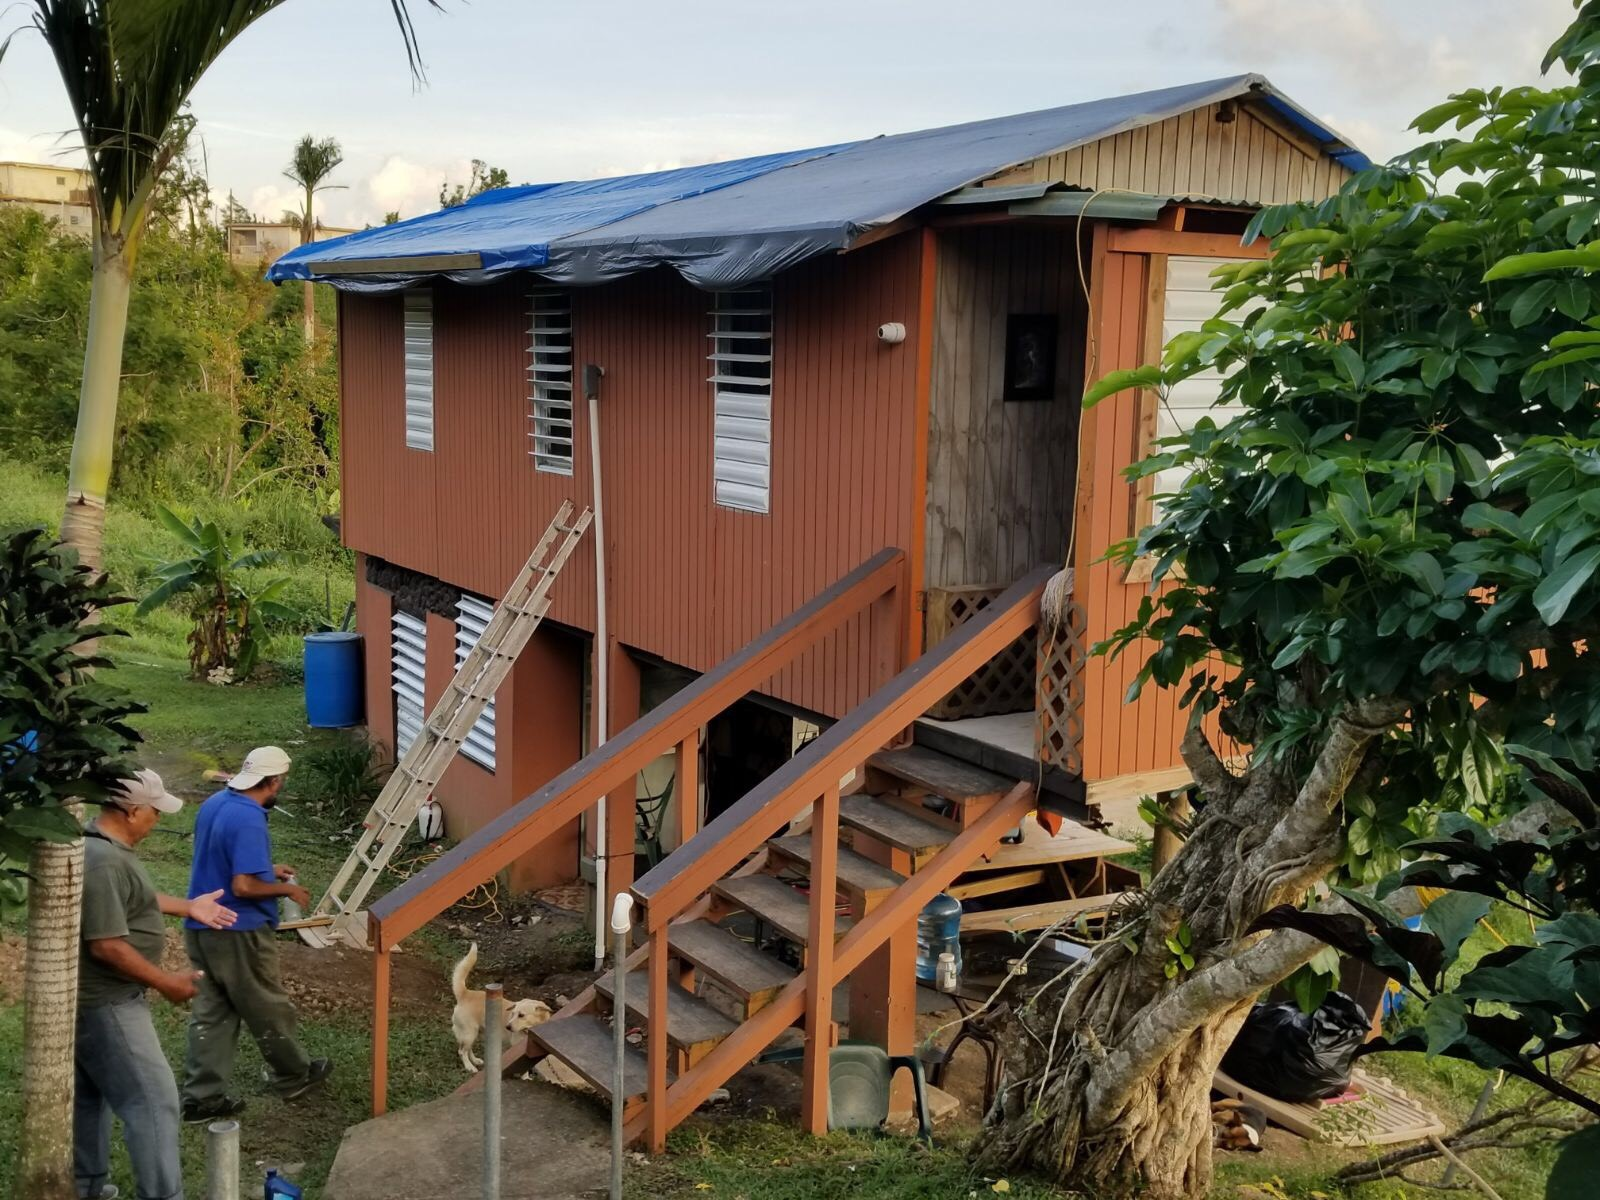 - Capital Concrete, Inc. helps the people of Puerto Rico. Contributions were made toward the TARPS (Toldos pa` mi gente) program, which means